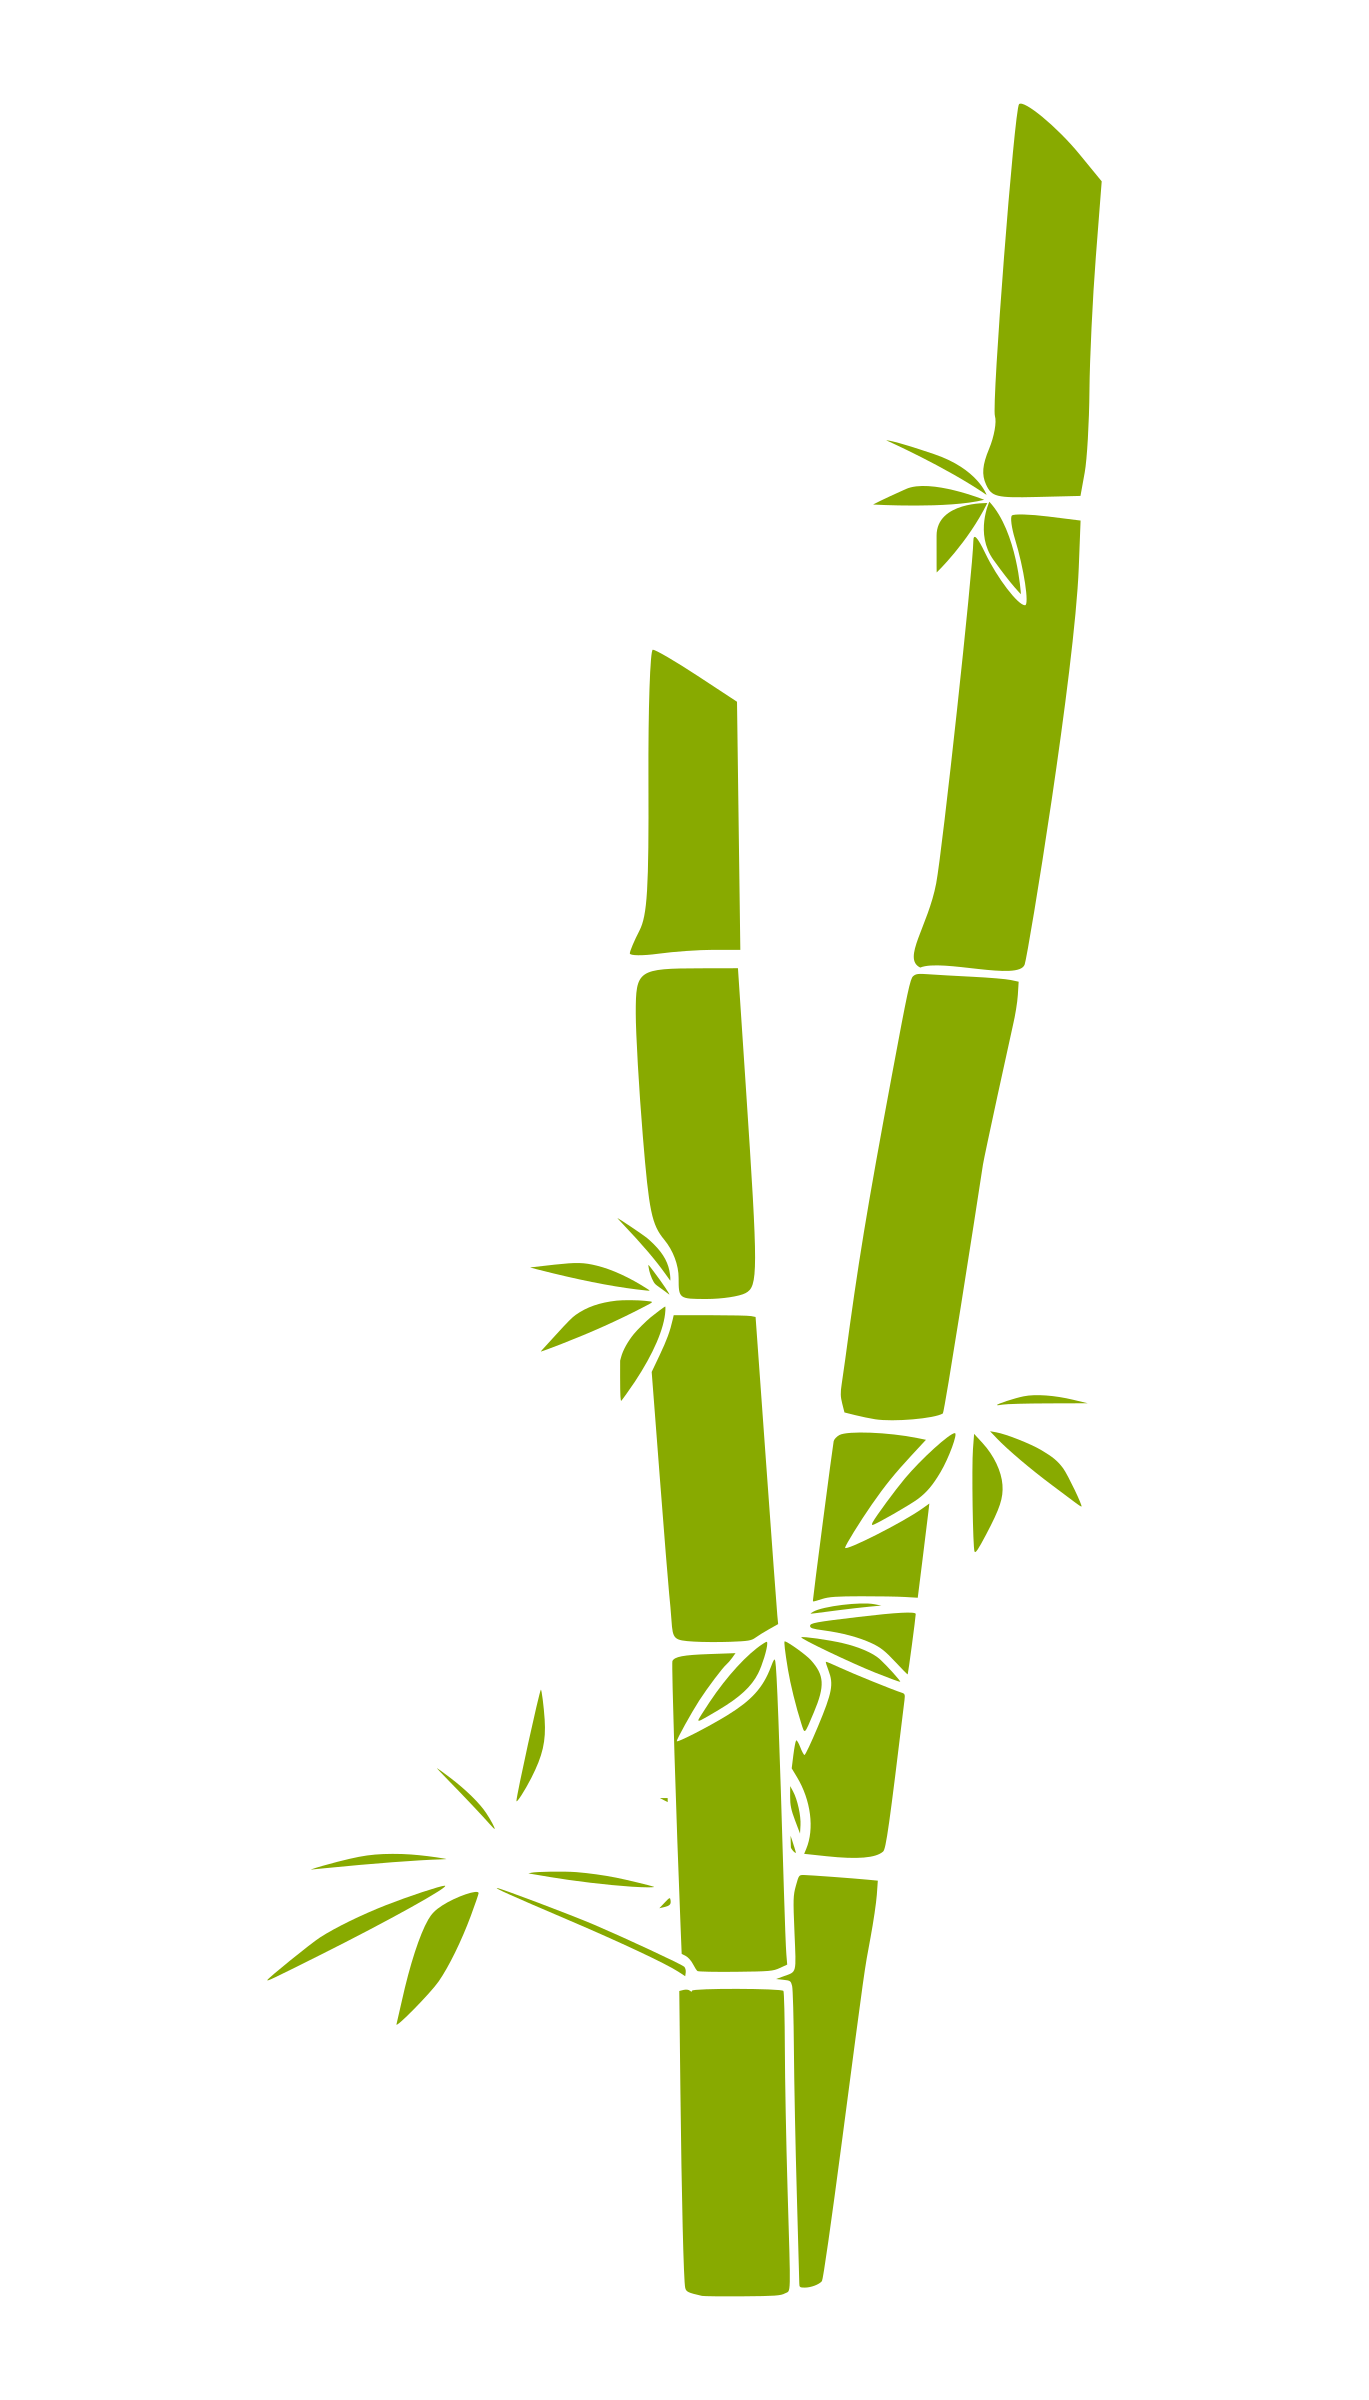 bamboo by a_rdhny